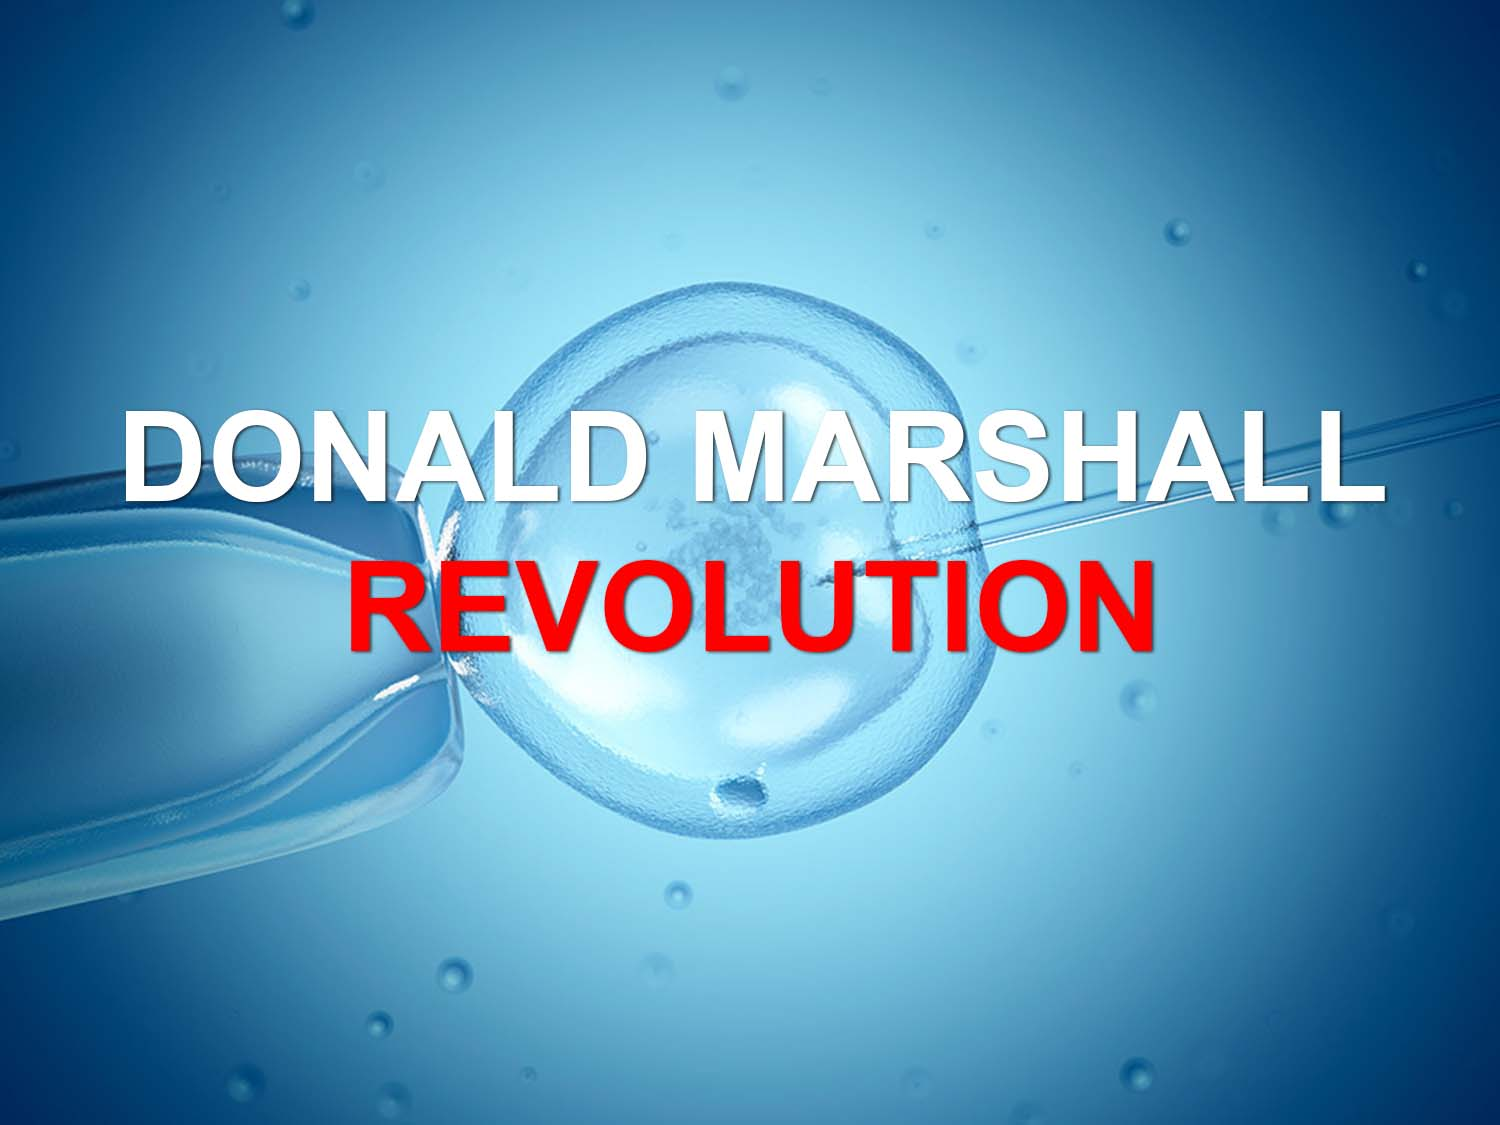 Donald Marshall Revolution